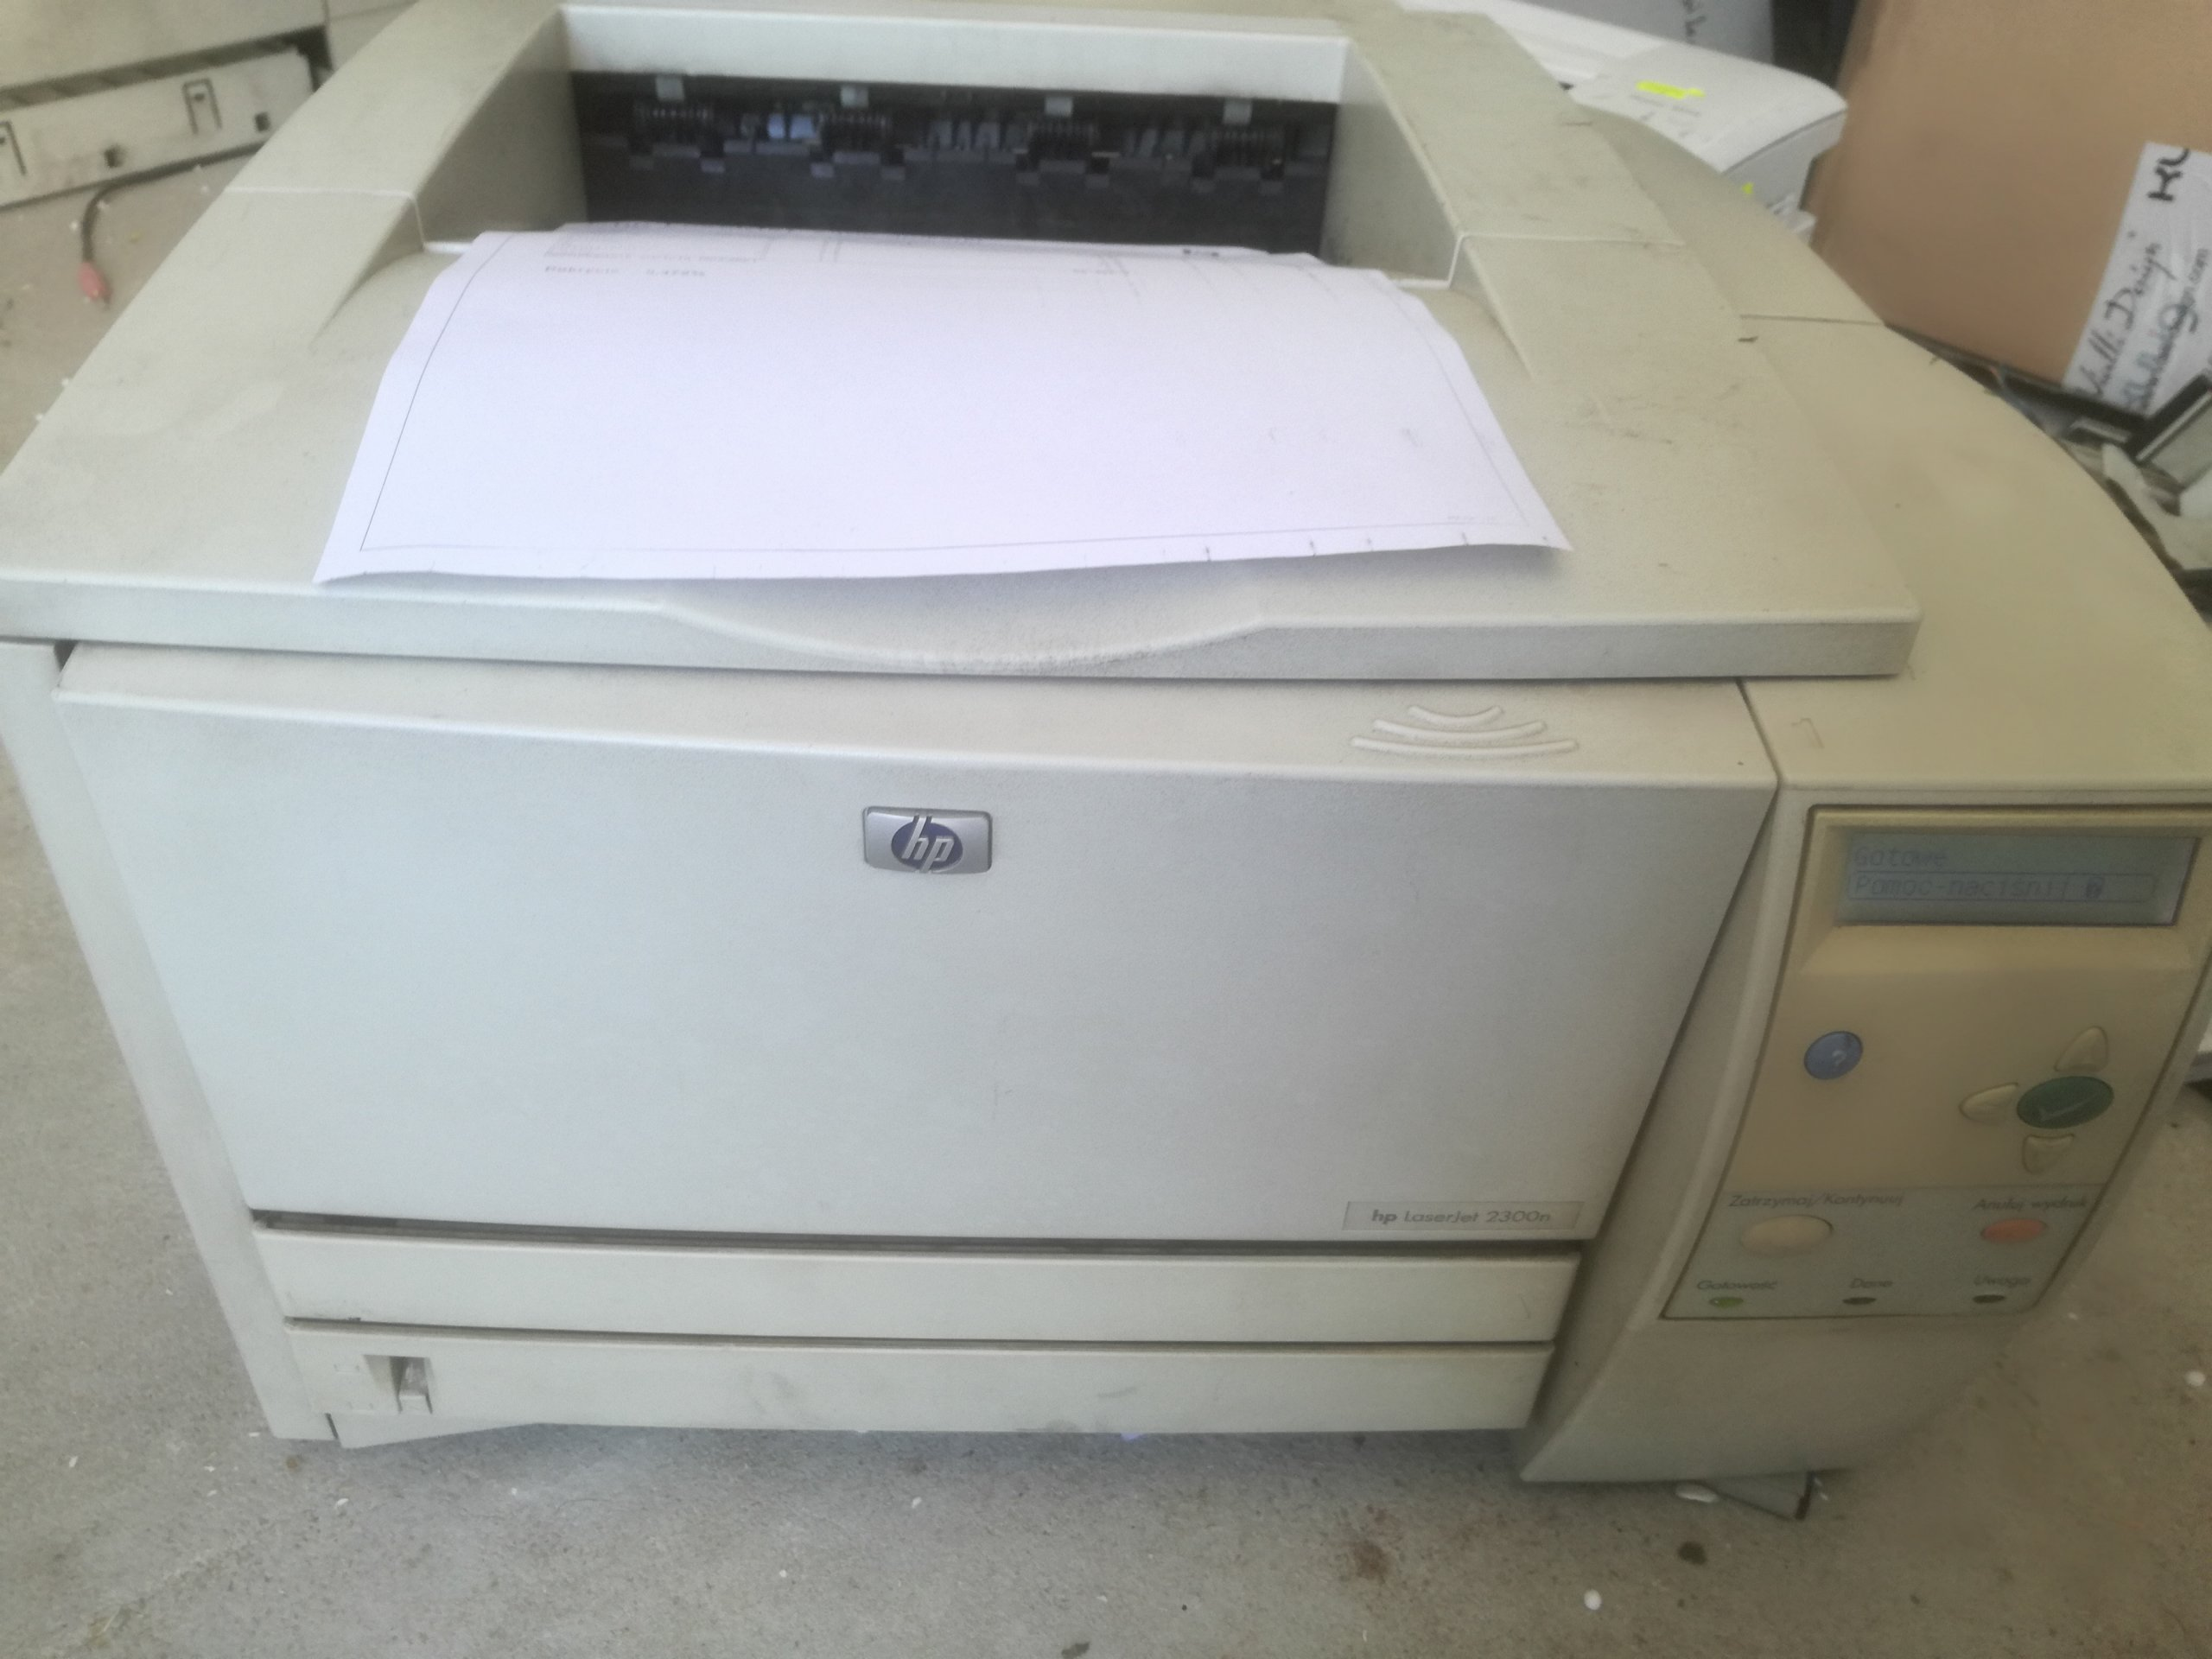 HP LASERJET 2300N WINDOWS 8 DRIVER DOWNLOAD